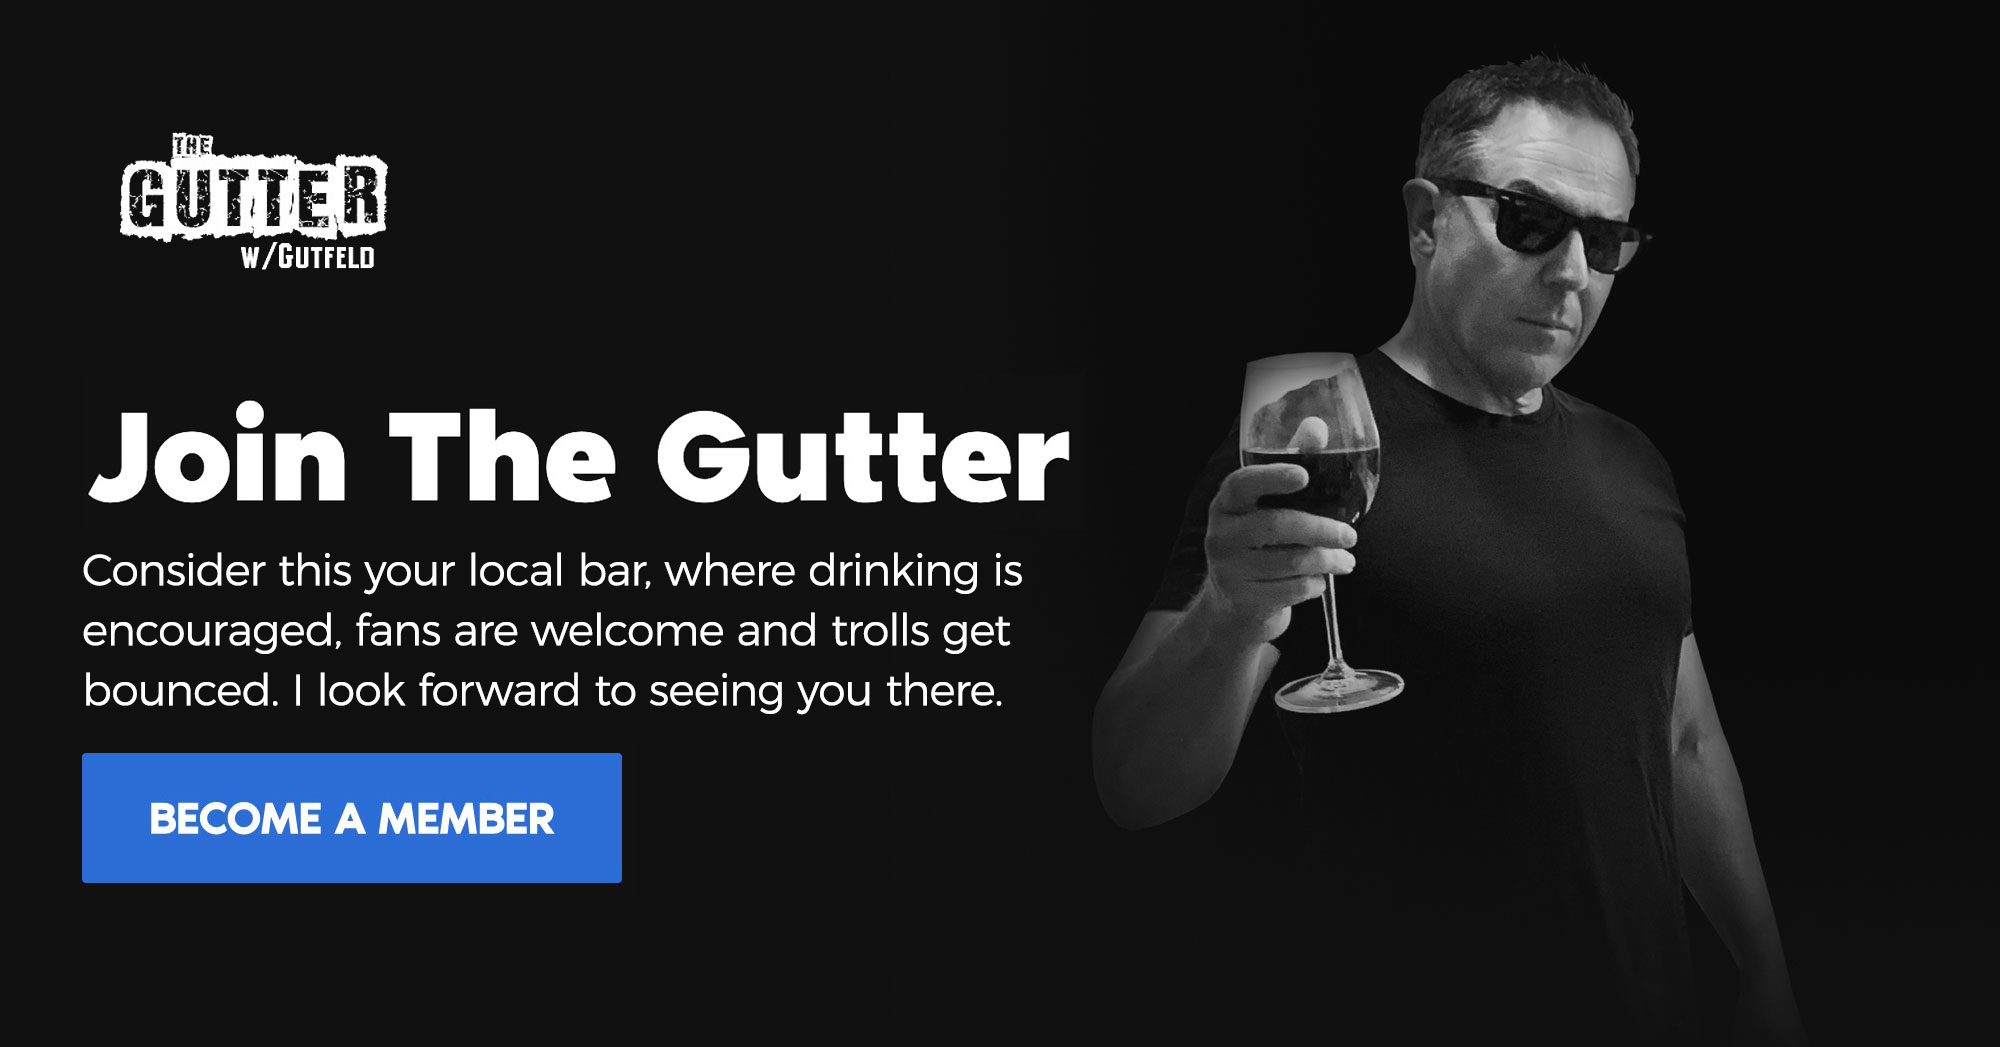 Greg Gutfeld - The Gutter